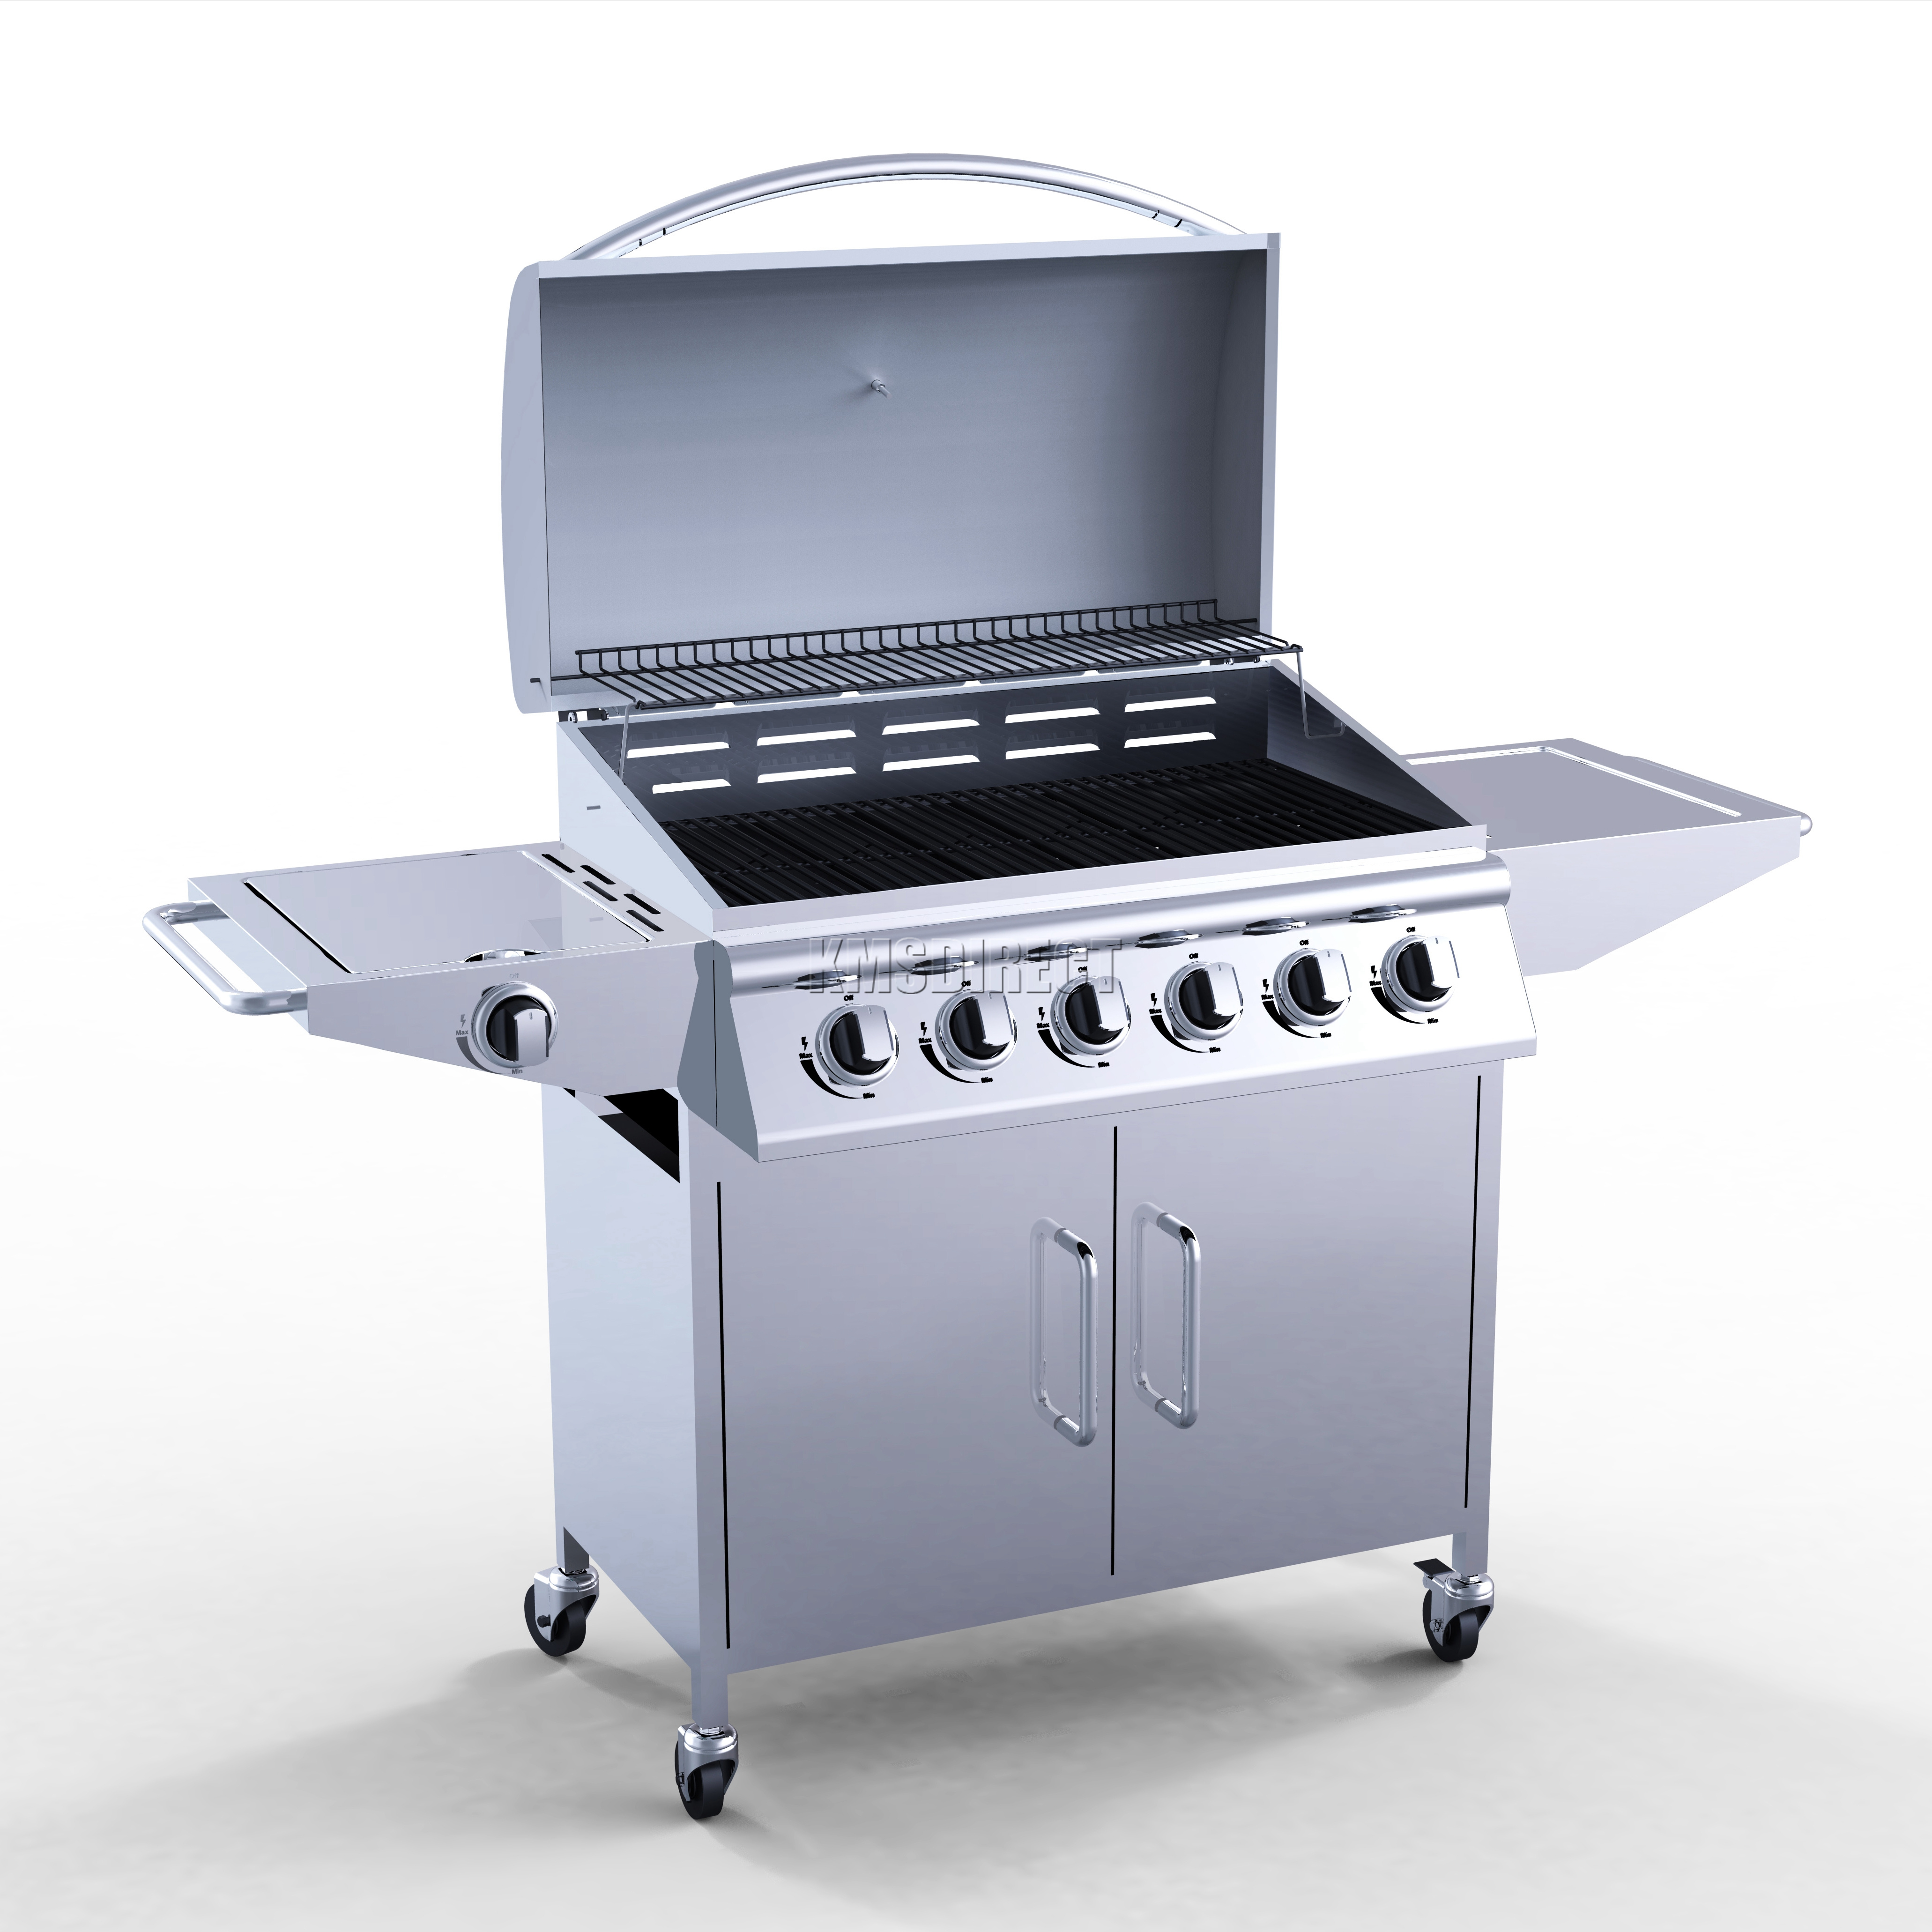 6 burner bbq gas grill stainless steel barbecue 1 side silver outdoor portable. Black Bedroom Furniture Sets. Home Design Ideas